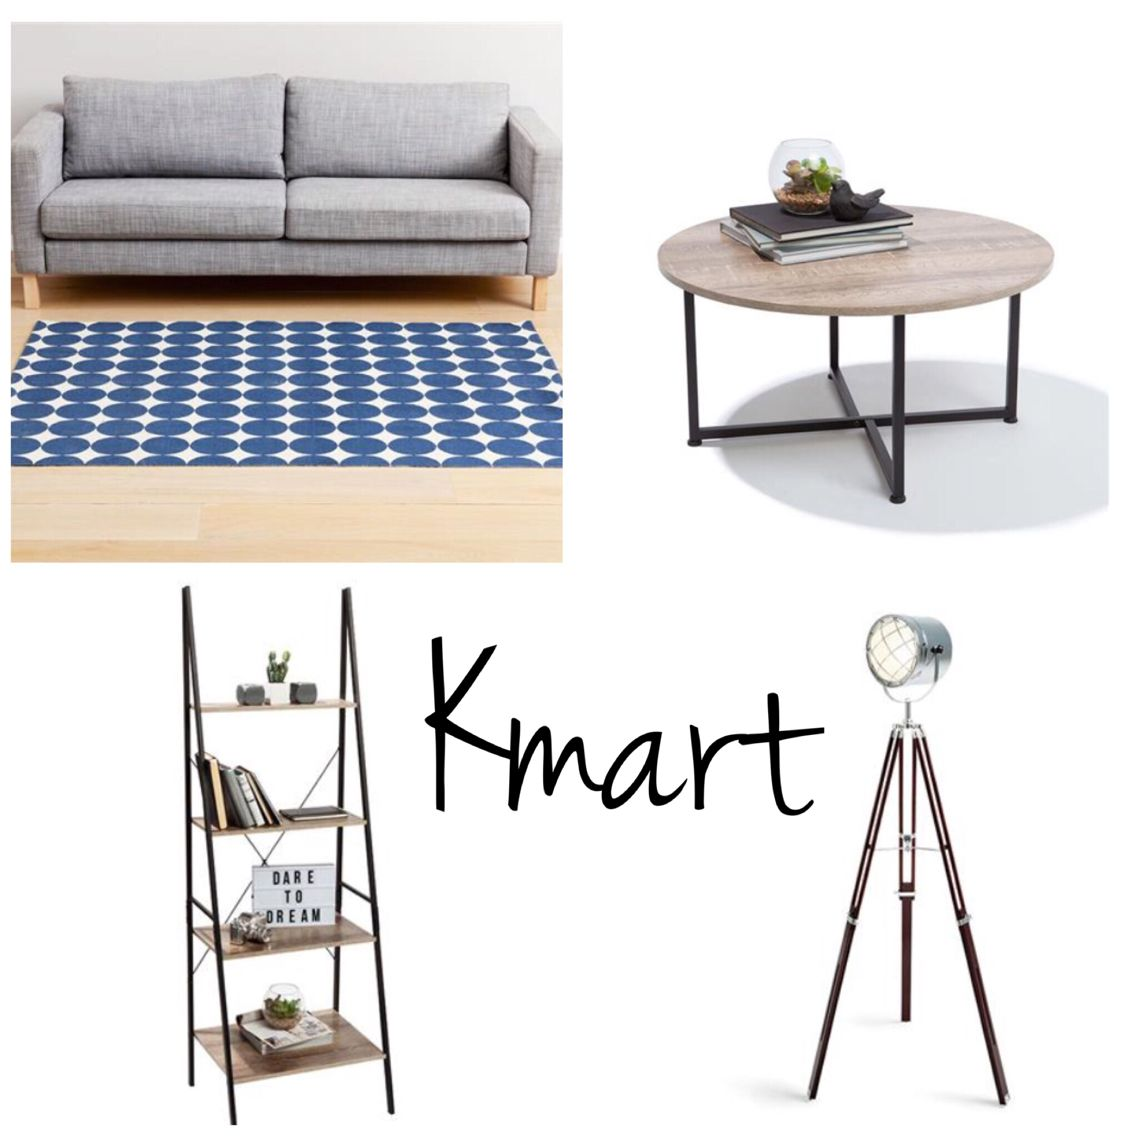 Serendipity Styling & Design\'s top 4 homeware picks from Kmart ...